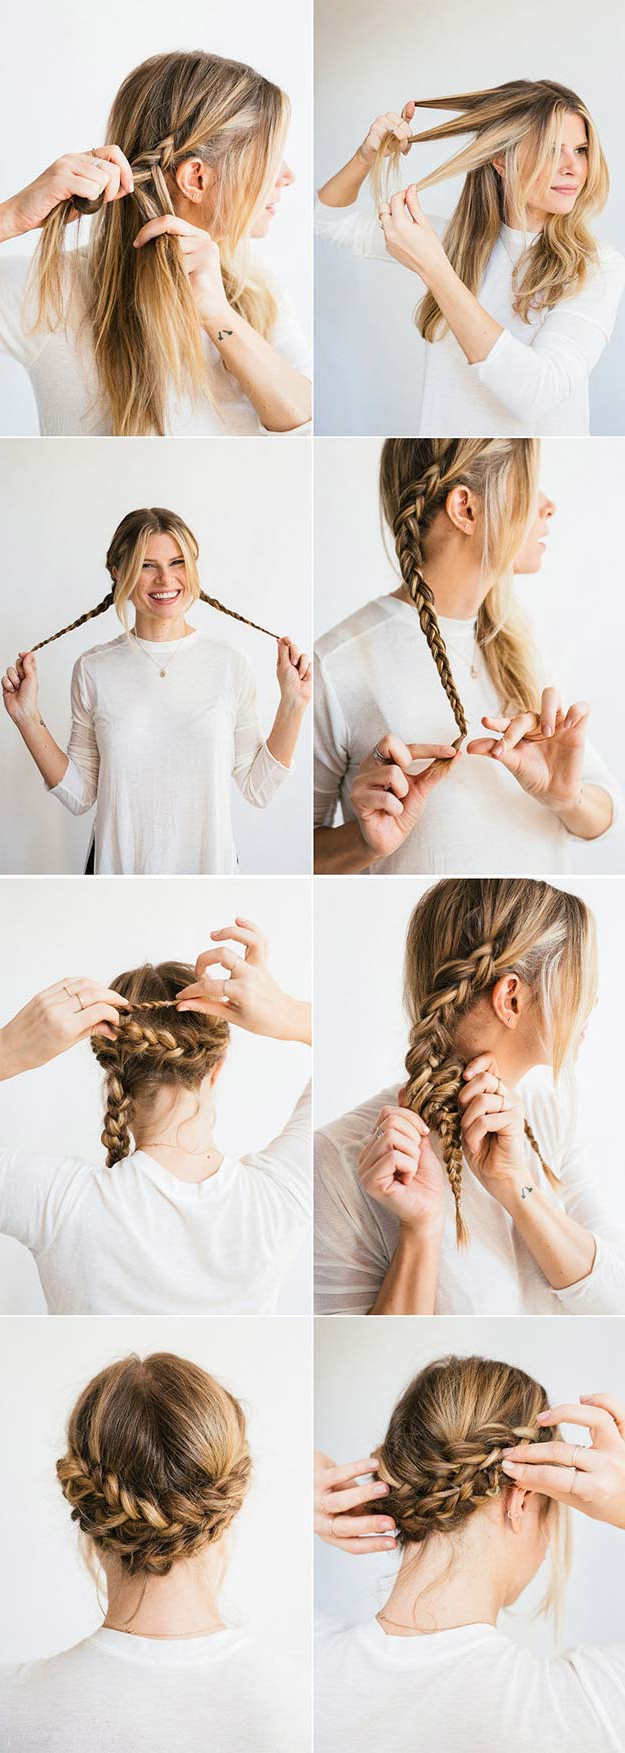 33 Best Hairstyles For Your 30s – The Goddess Regarding Newest Medium Haircuts For Women In Their 30s (View 17 of 20)